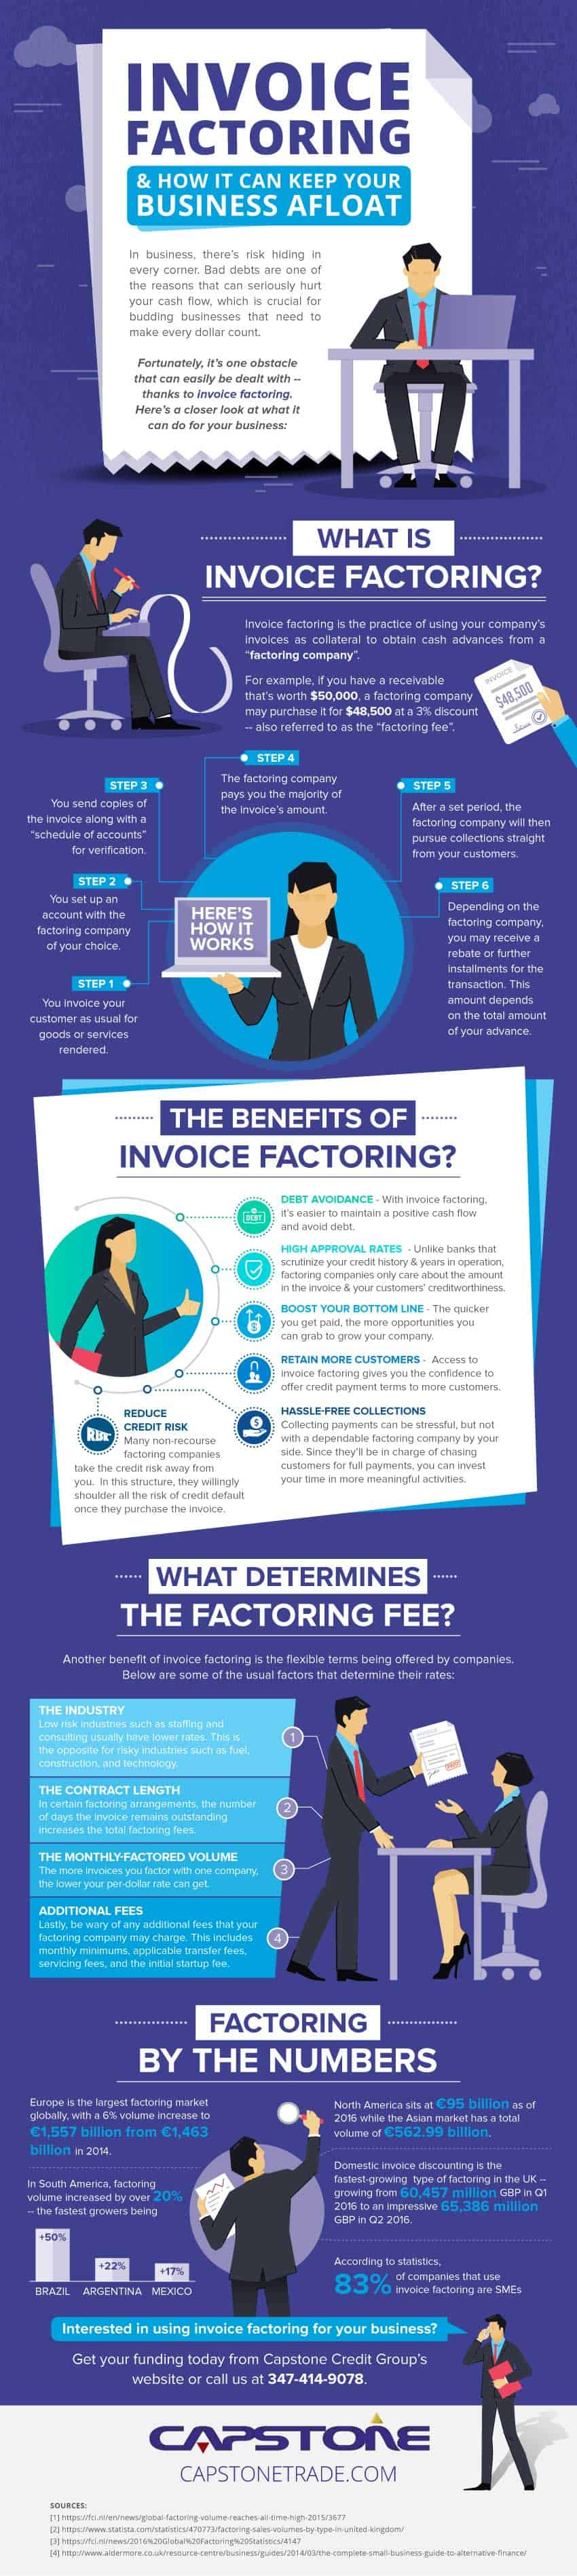 What is Invoice Factoring and how does it work | Capstone